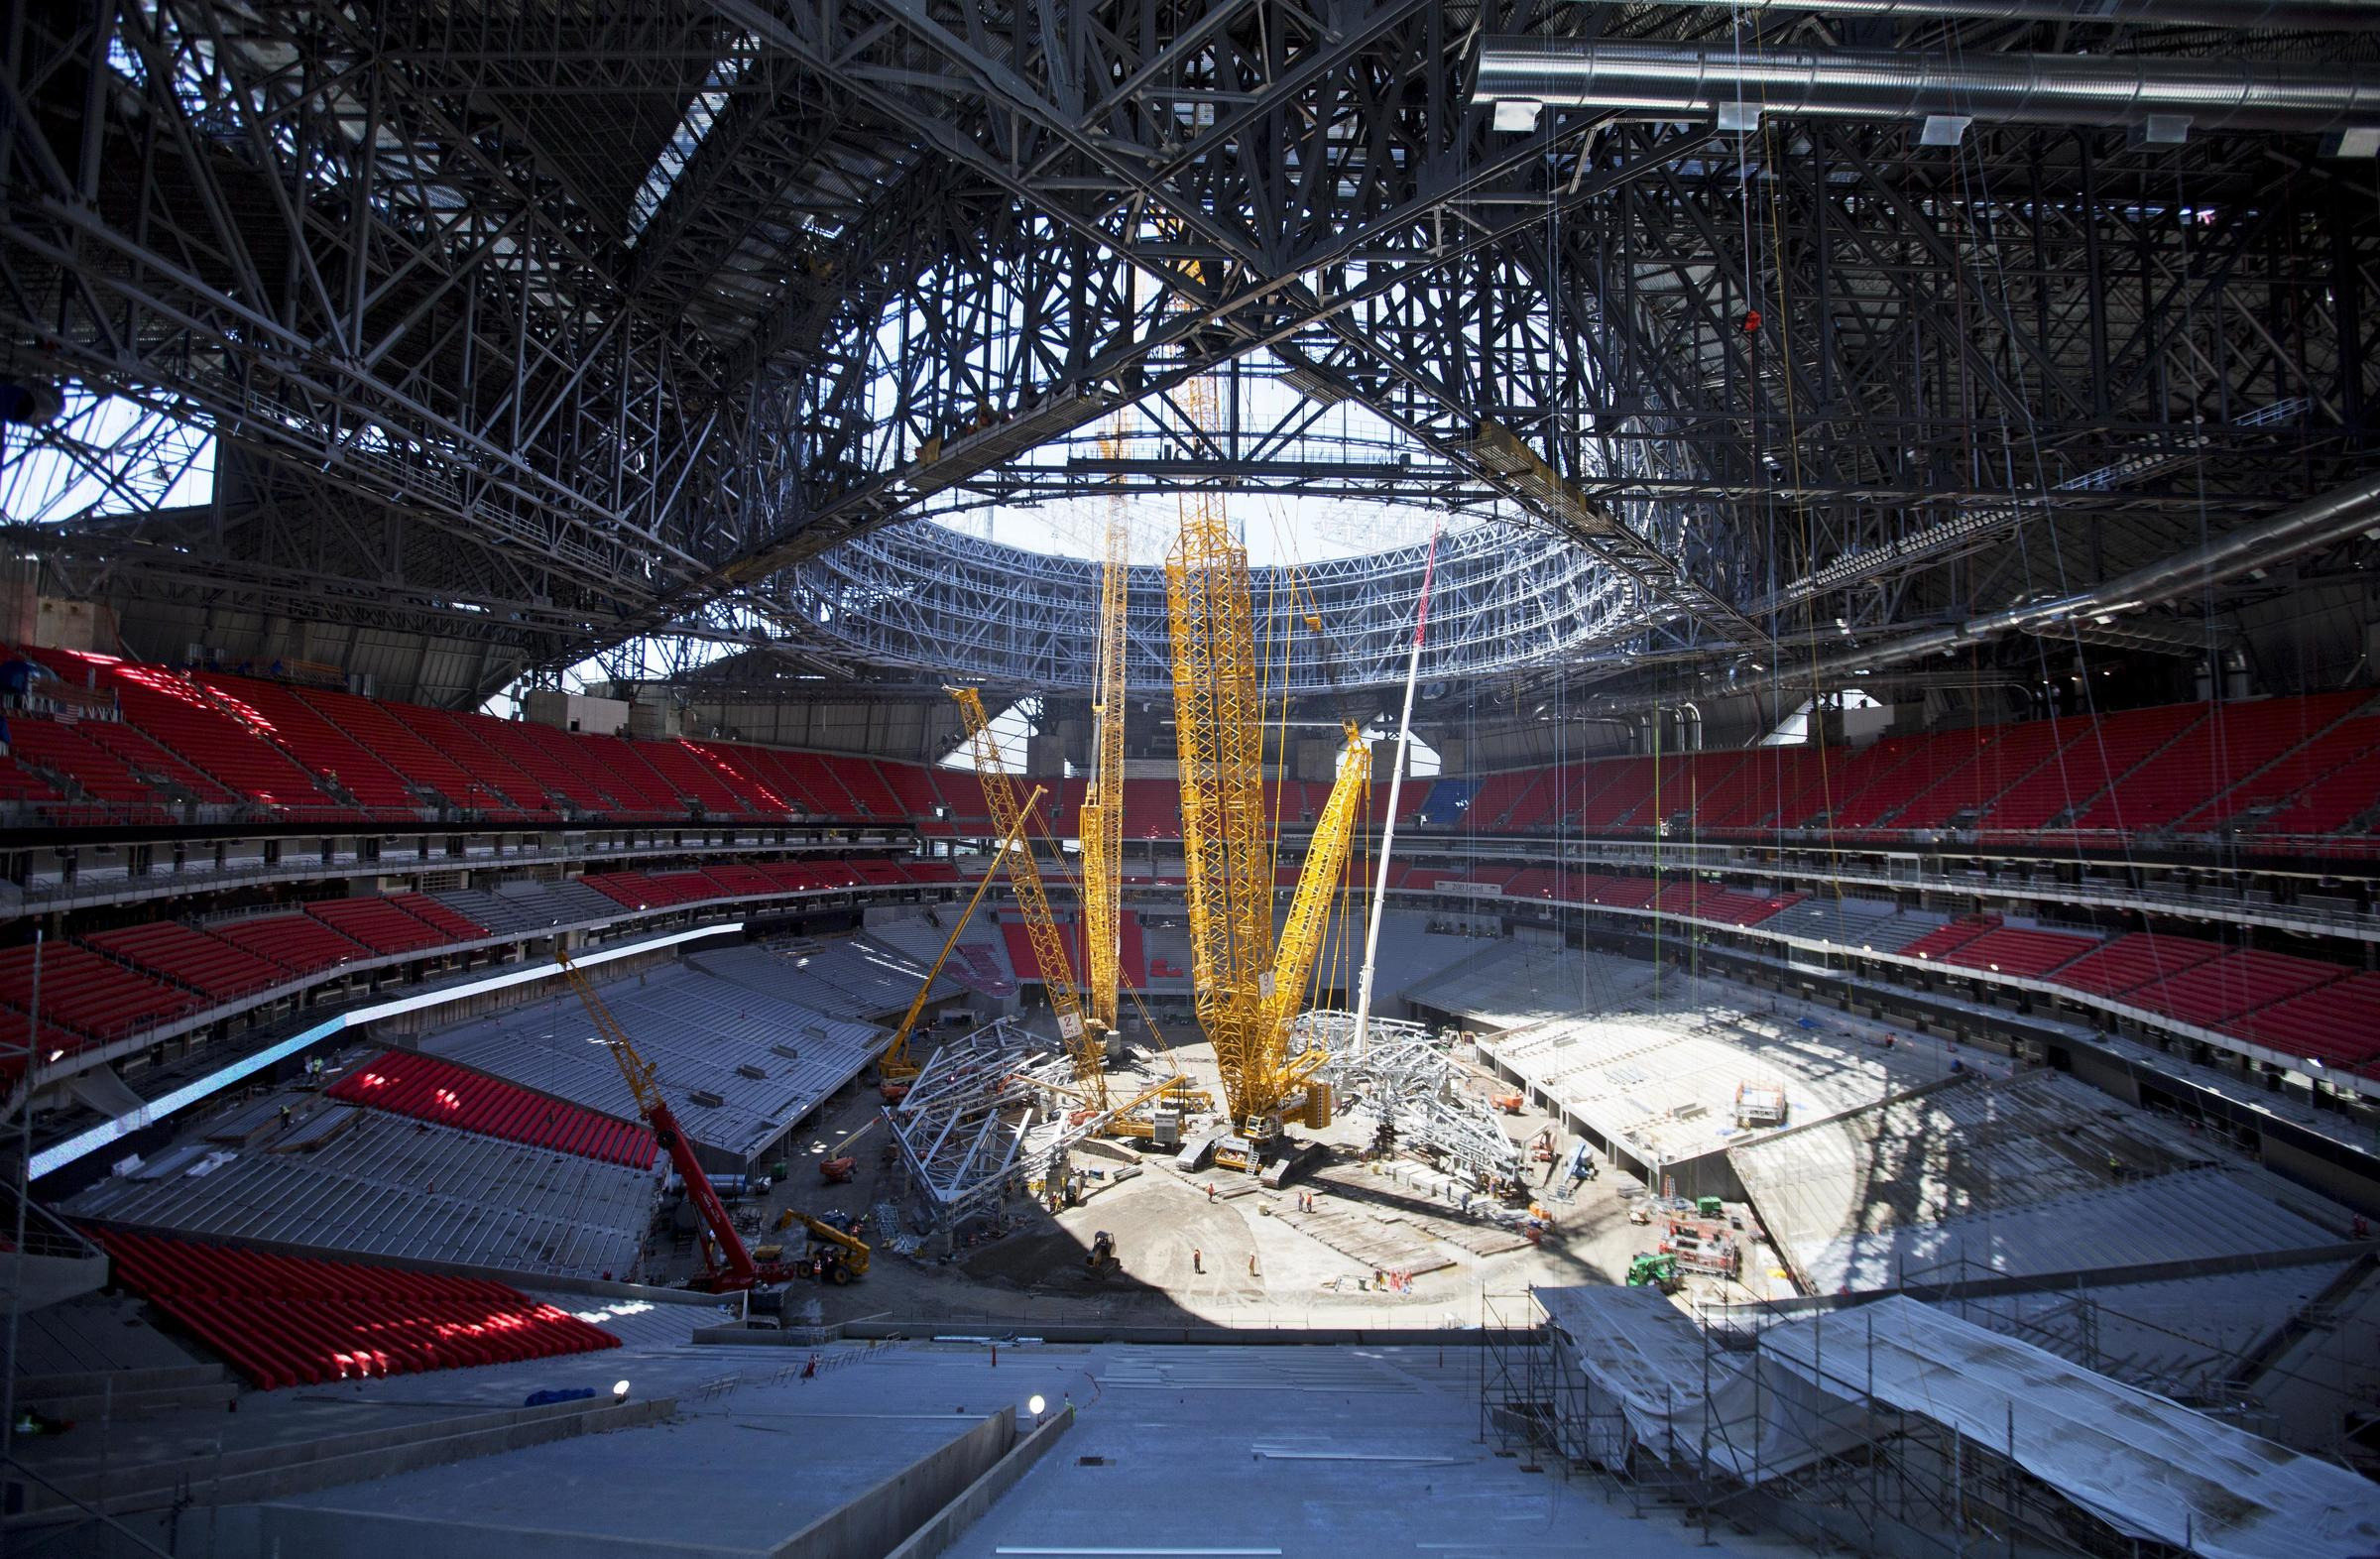 High hopes for high tech mercedes benz stadium despite for Mercedes benz stadium atlanta hotels